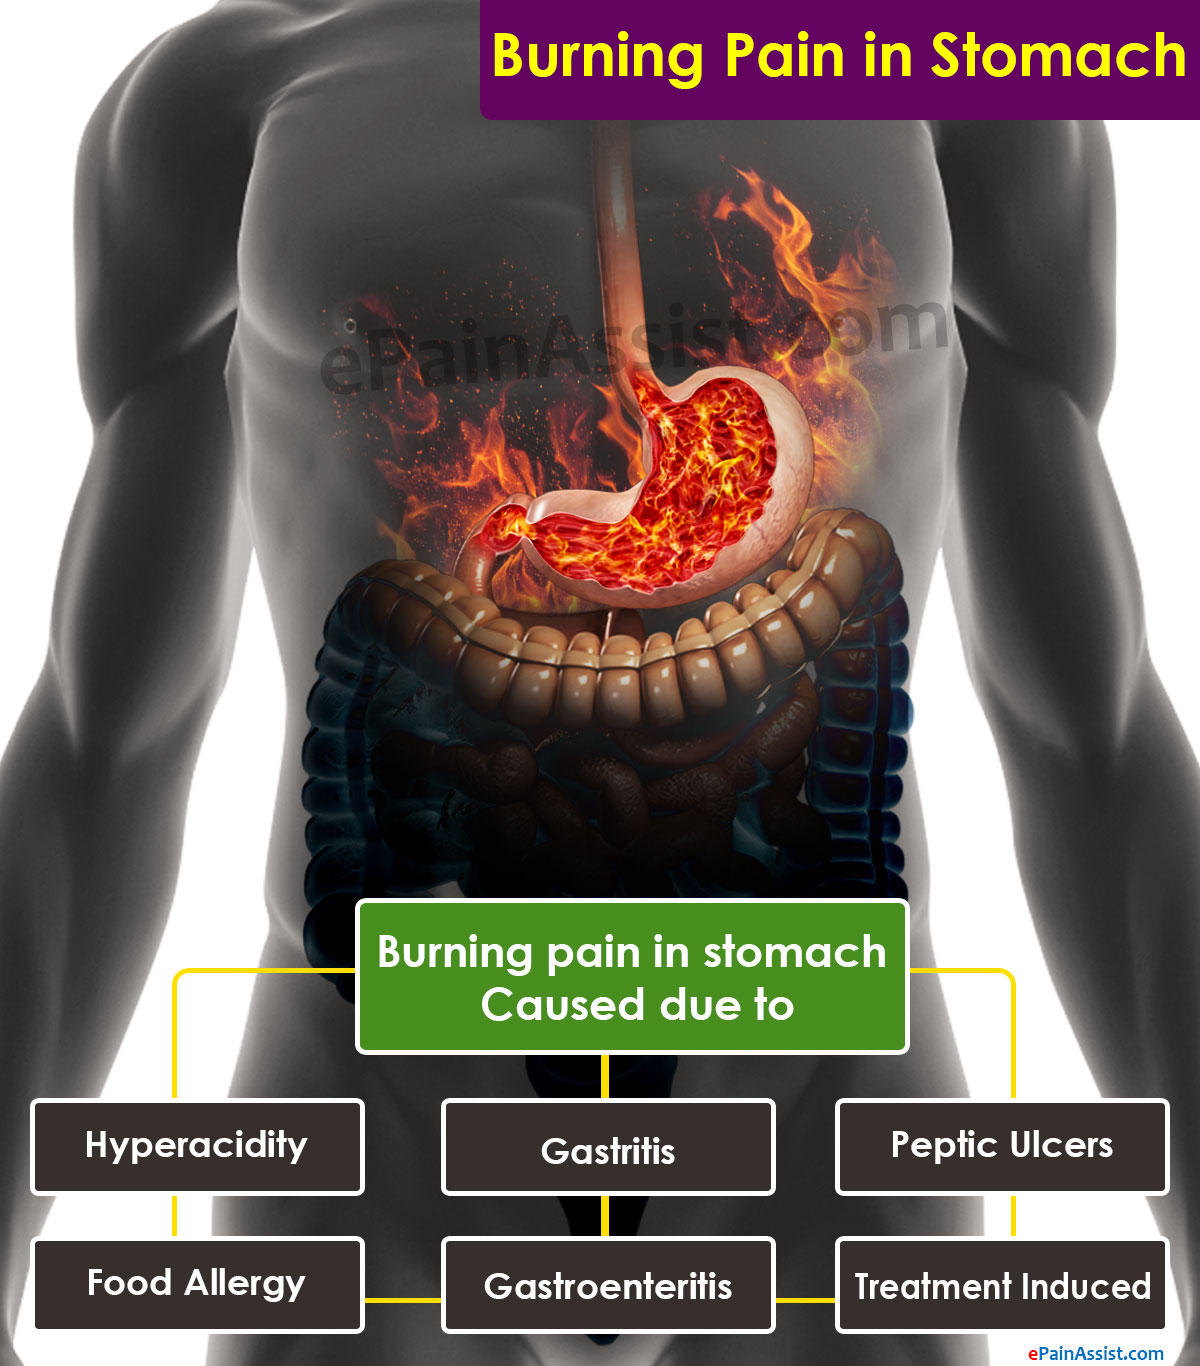 What Can Cause Burning Pain in Stomach?